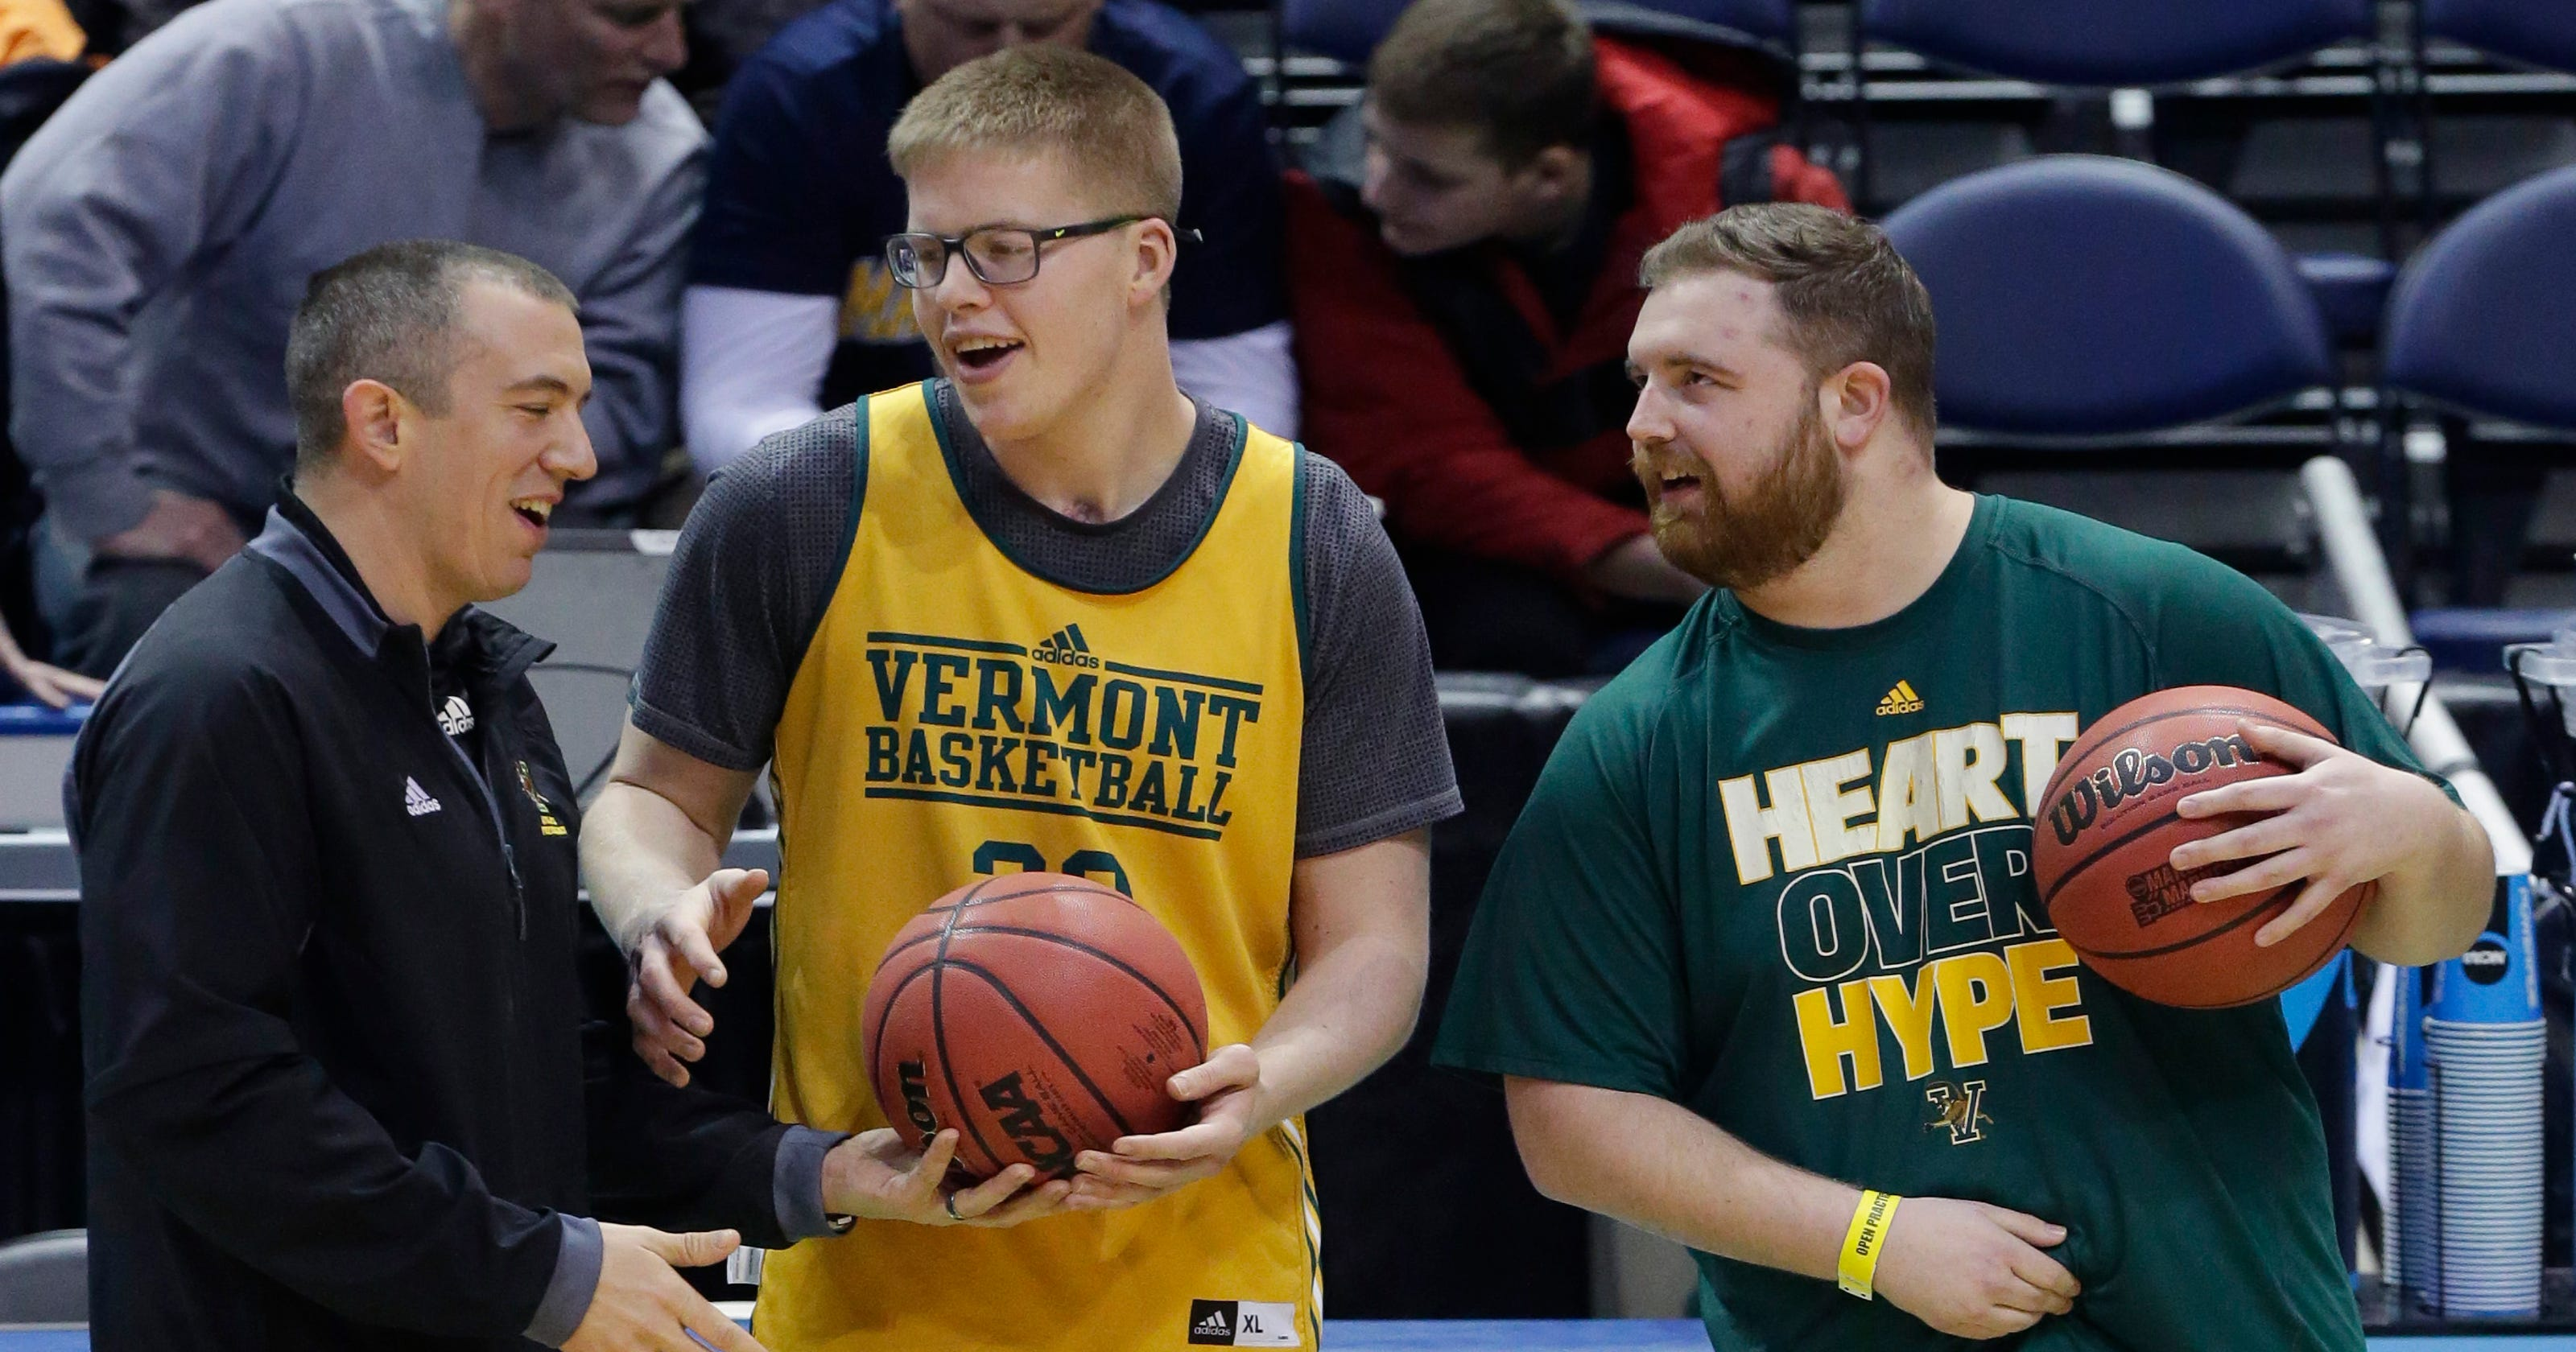 UVM basketball: 5 reasons to root for the Catamounts in the